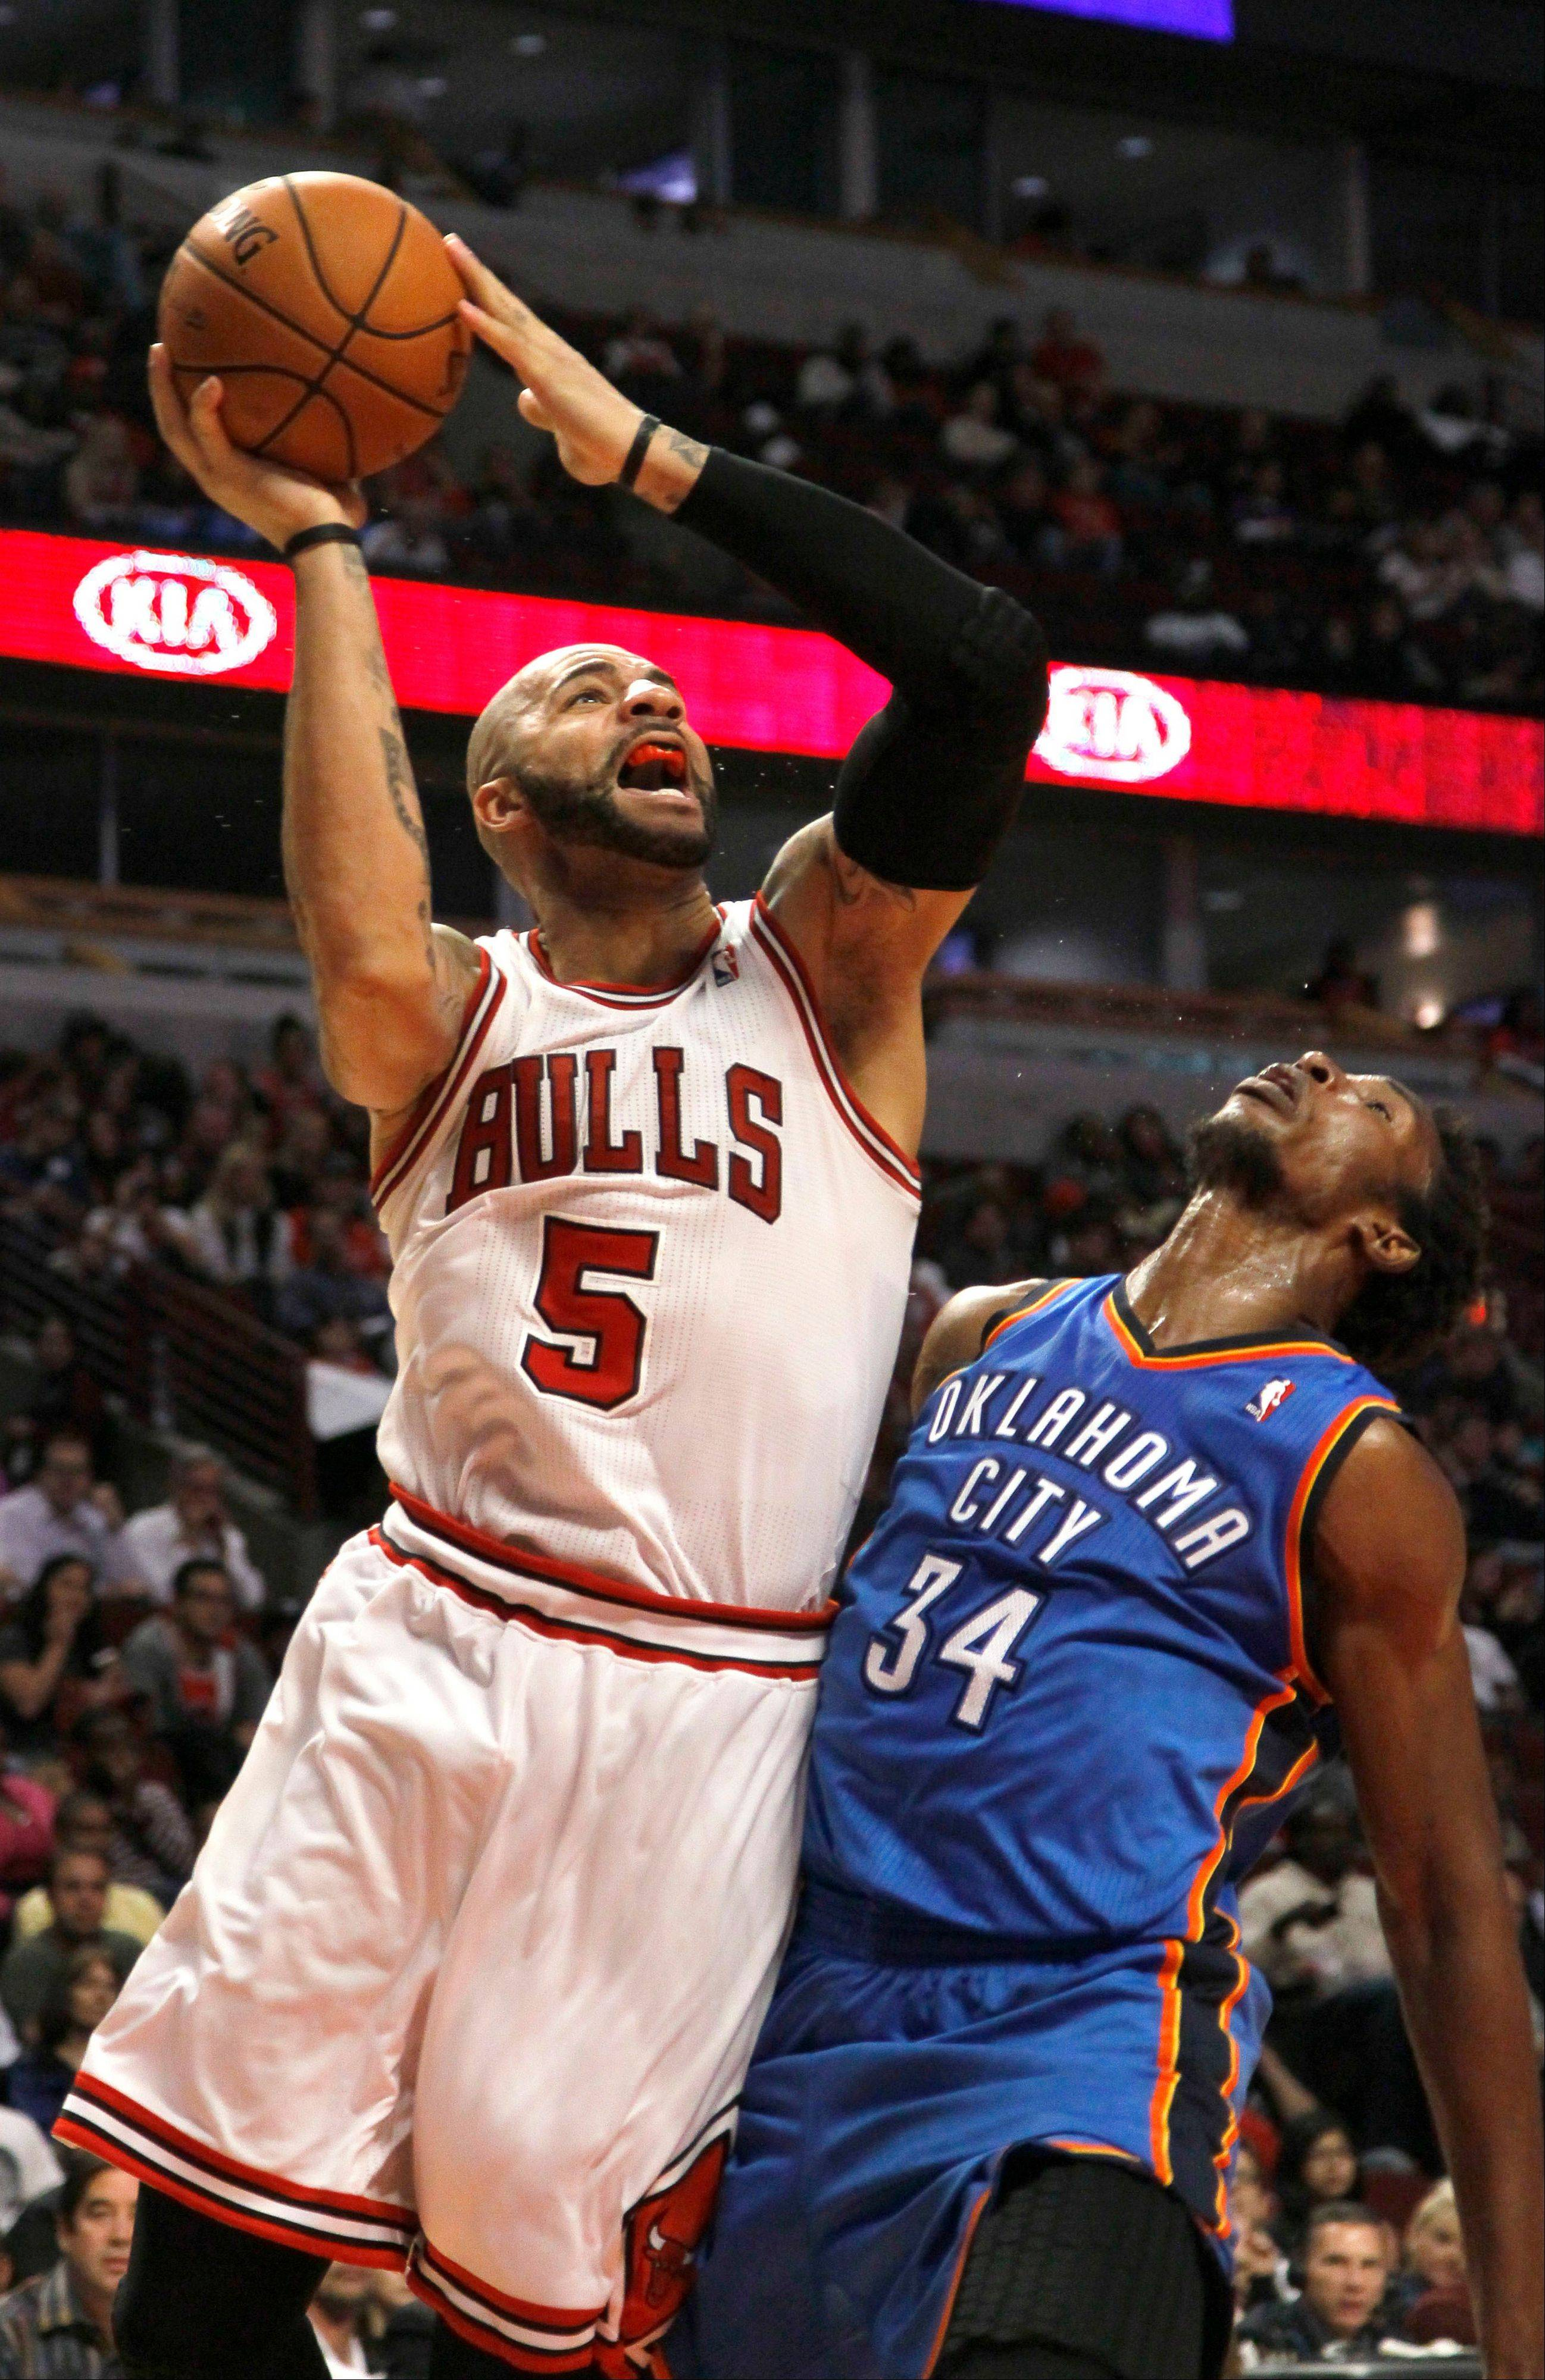 Chicago Bulls forward Carlos Boozer (5) shoots over Oklahoma City Thunder center Hasheem Thabeet during the second half of an NBA preseason basketball game, Tuesday, Oct. 23, 2012, in Chicago. The Bulls won 94-89. Boozer had 24 points, 12 rebounds and five assists. (AP Photo/Charles Rex Arbogast)